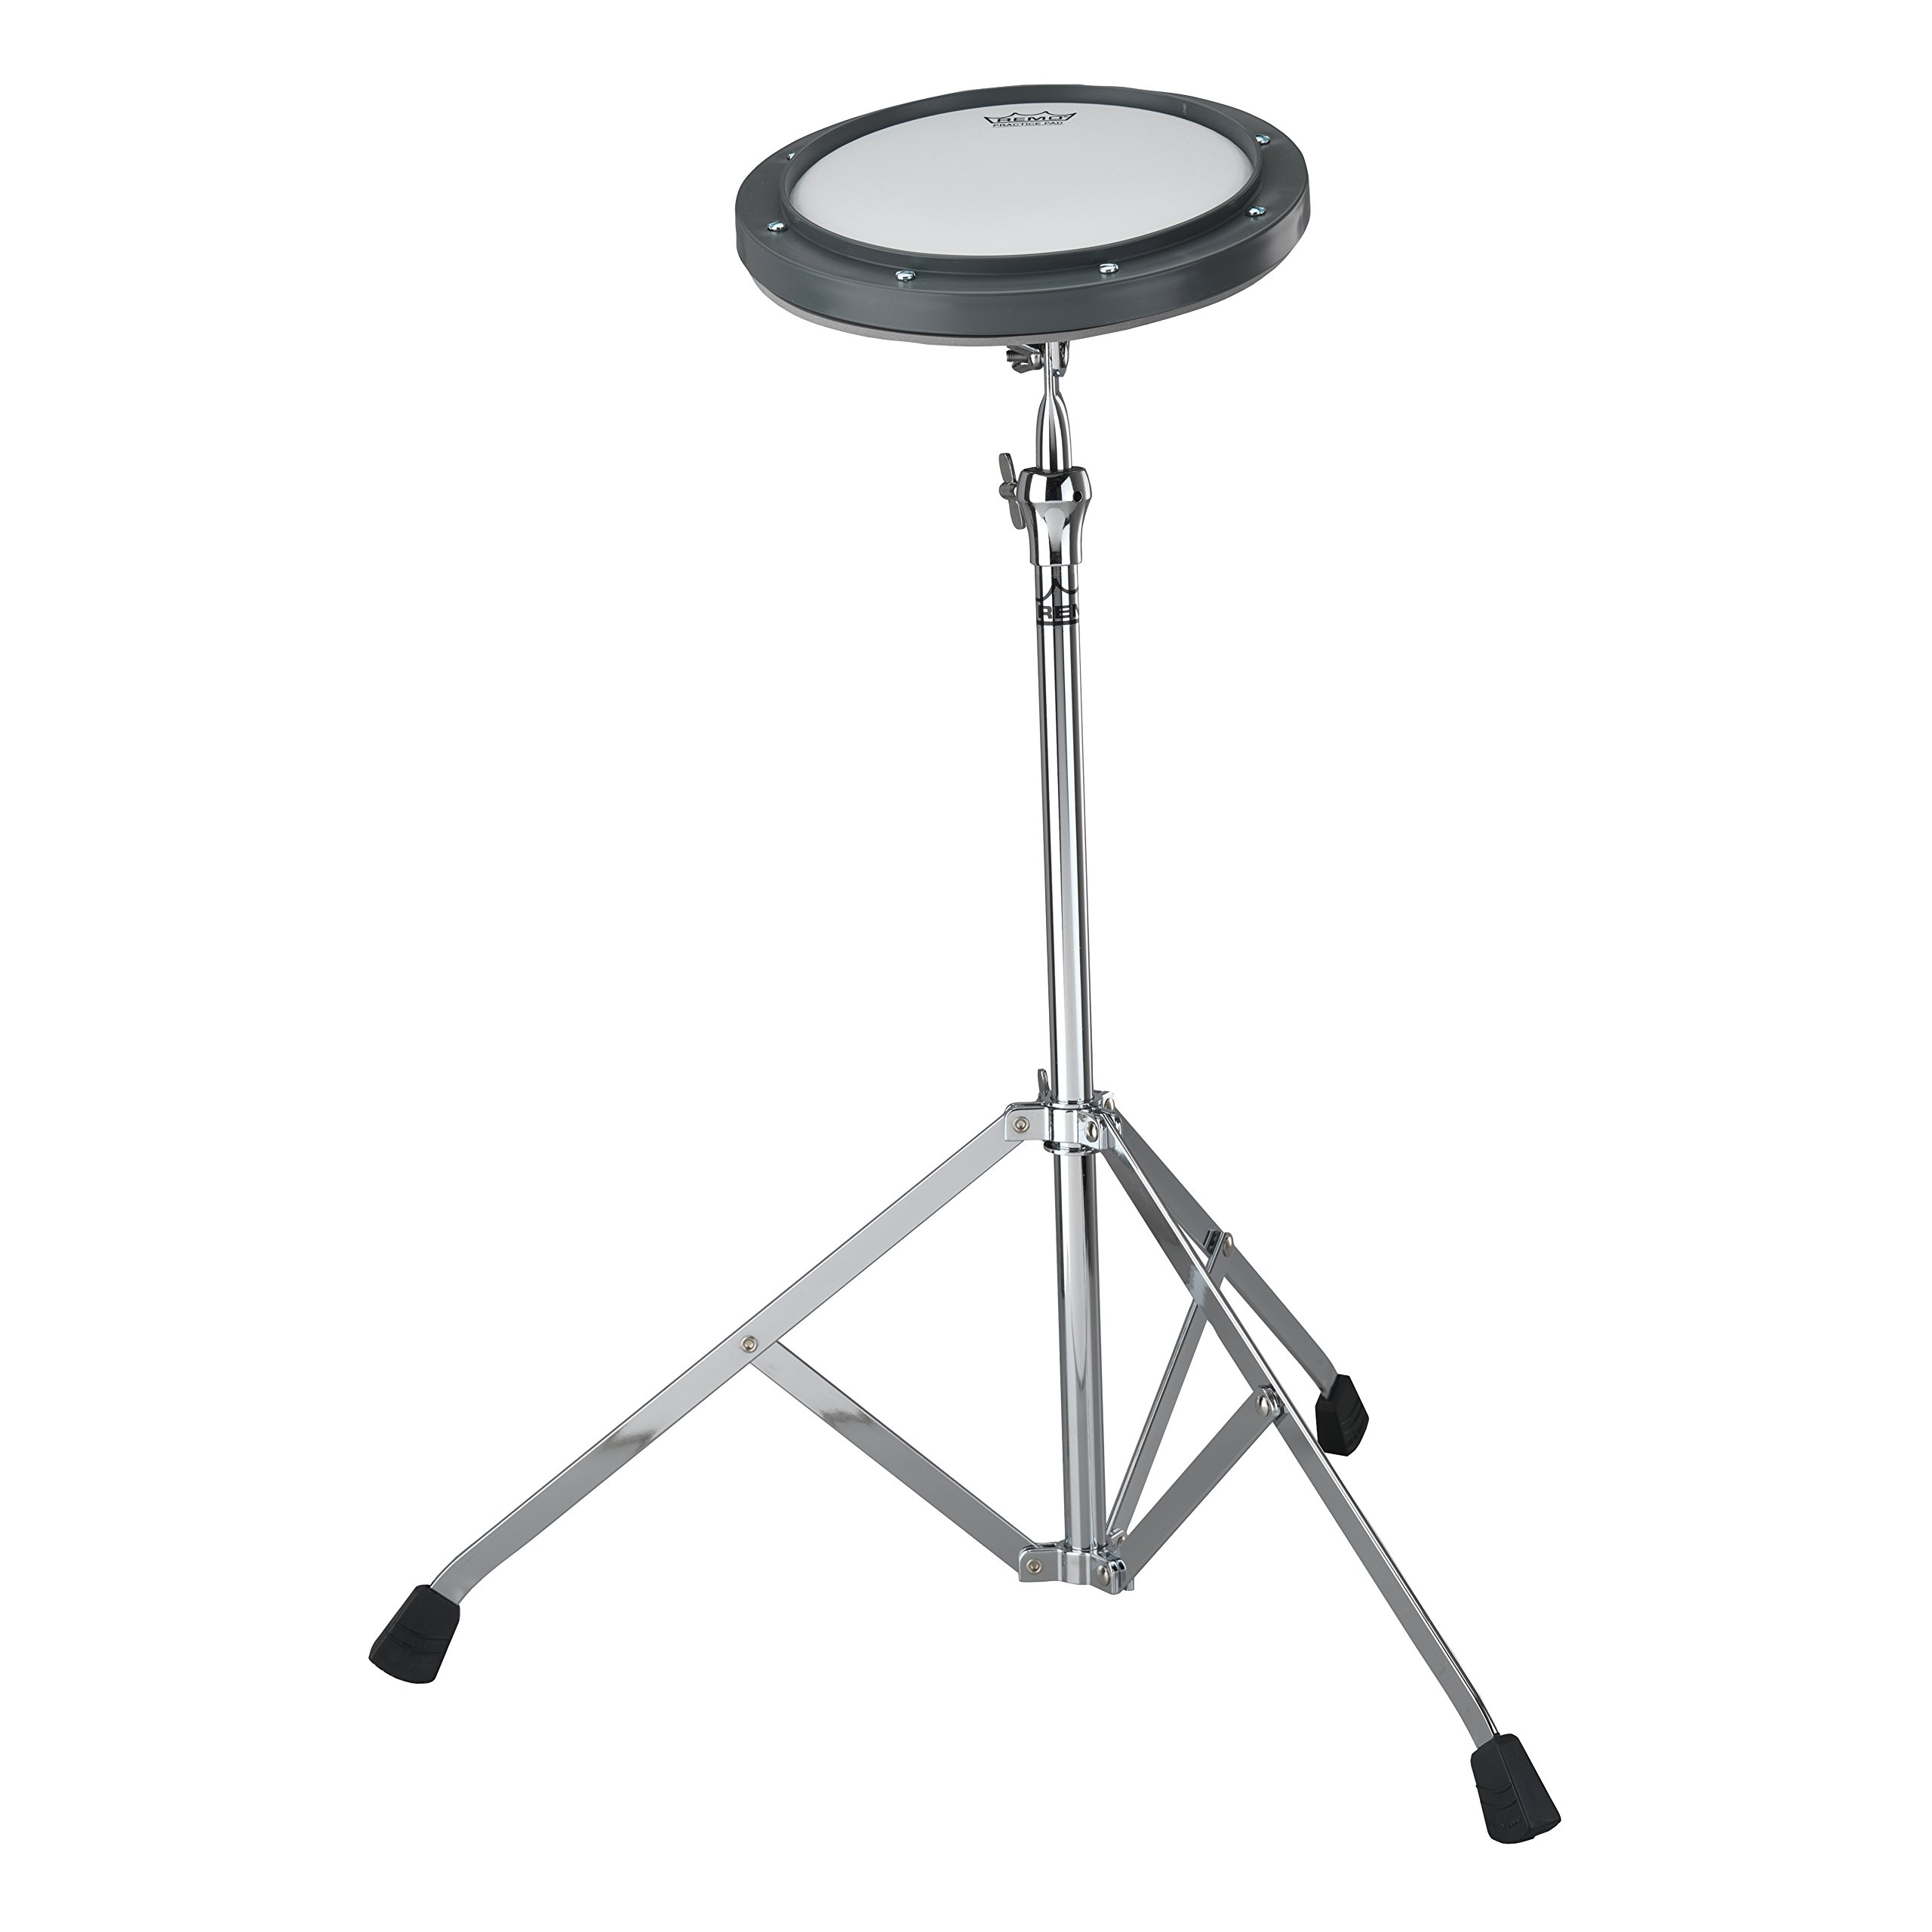 Remo RT-0010-ST 10'' Gray Tunable Practice Pad with Ambassador Coated Drumhead and ST-1000-10 Stand